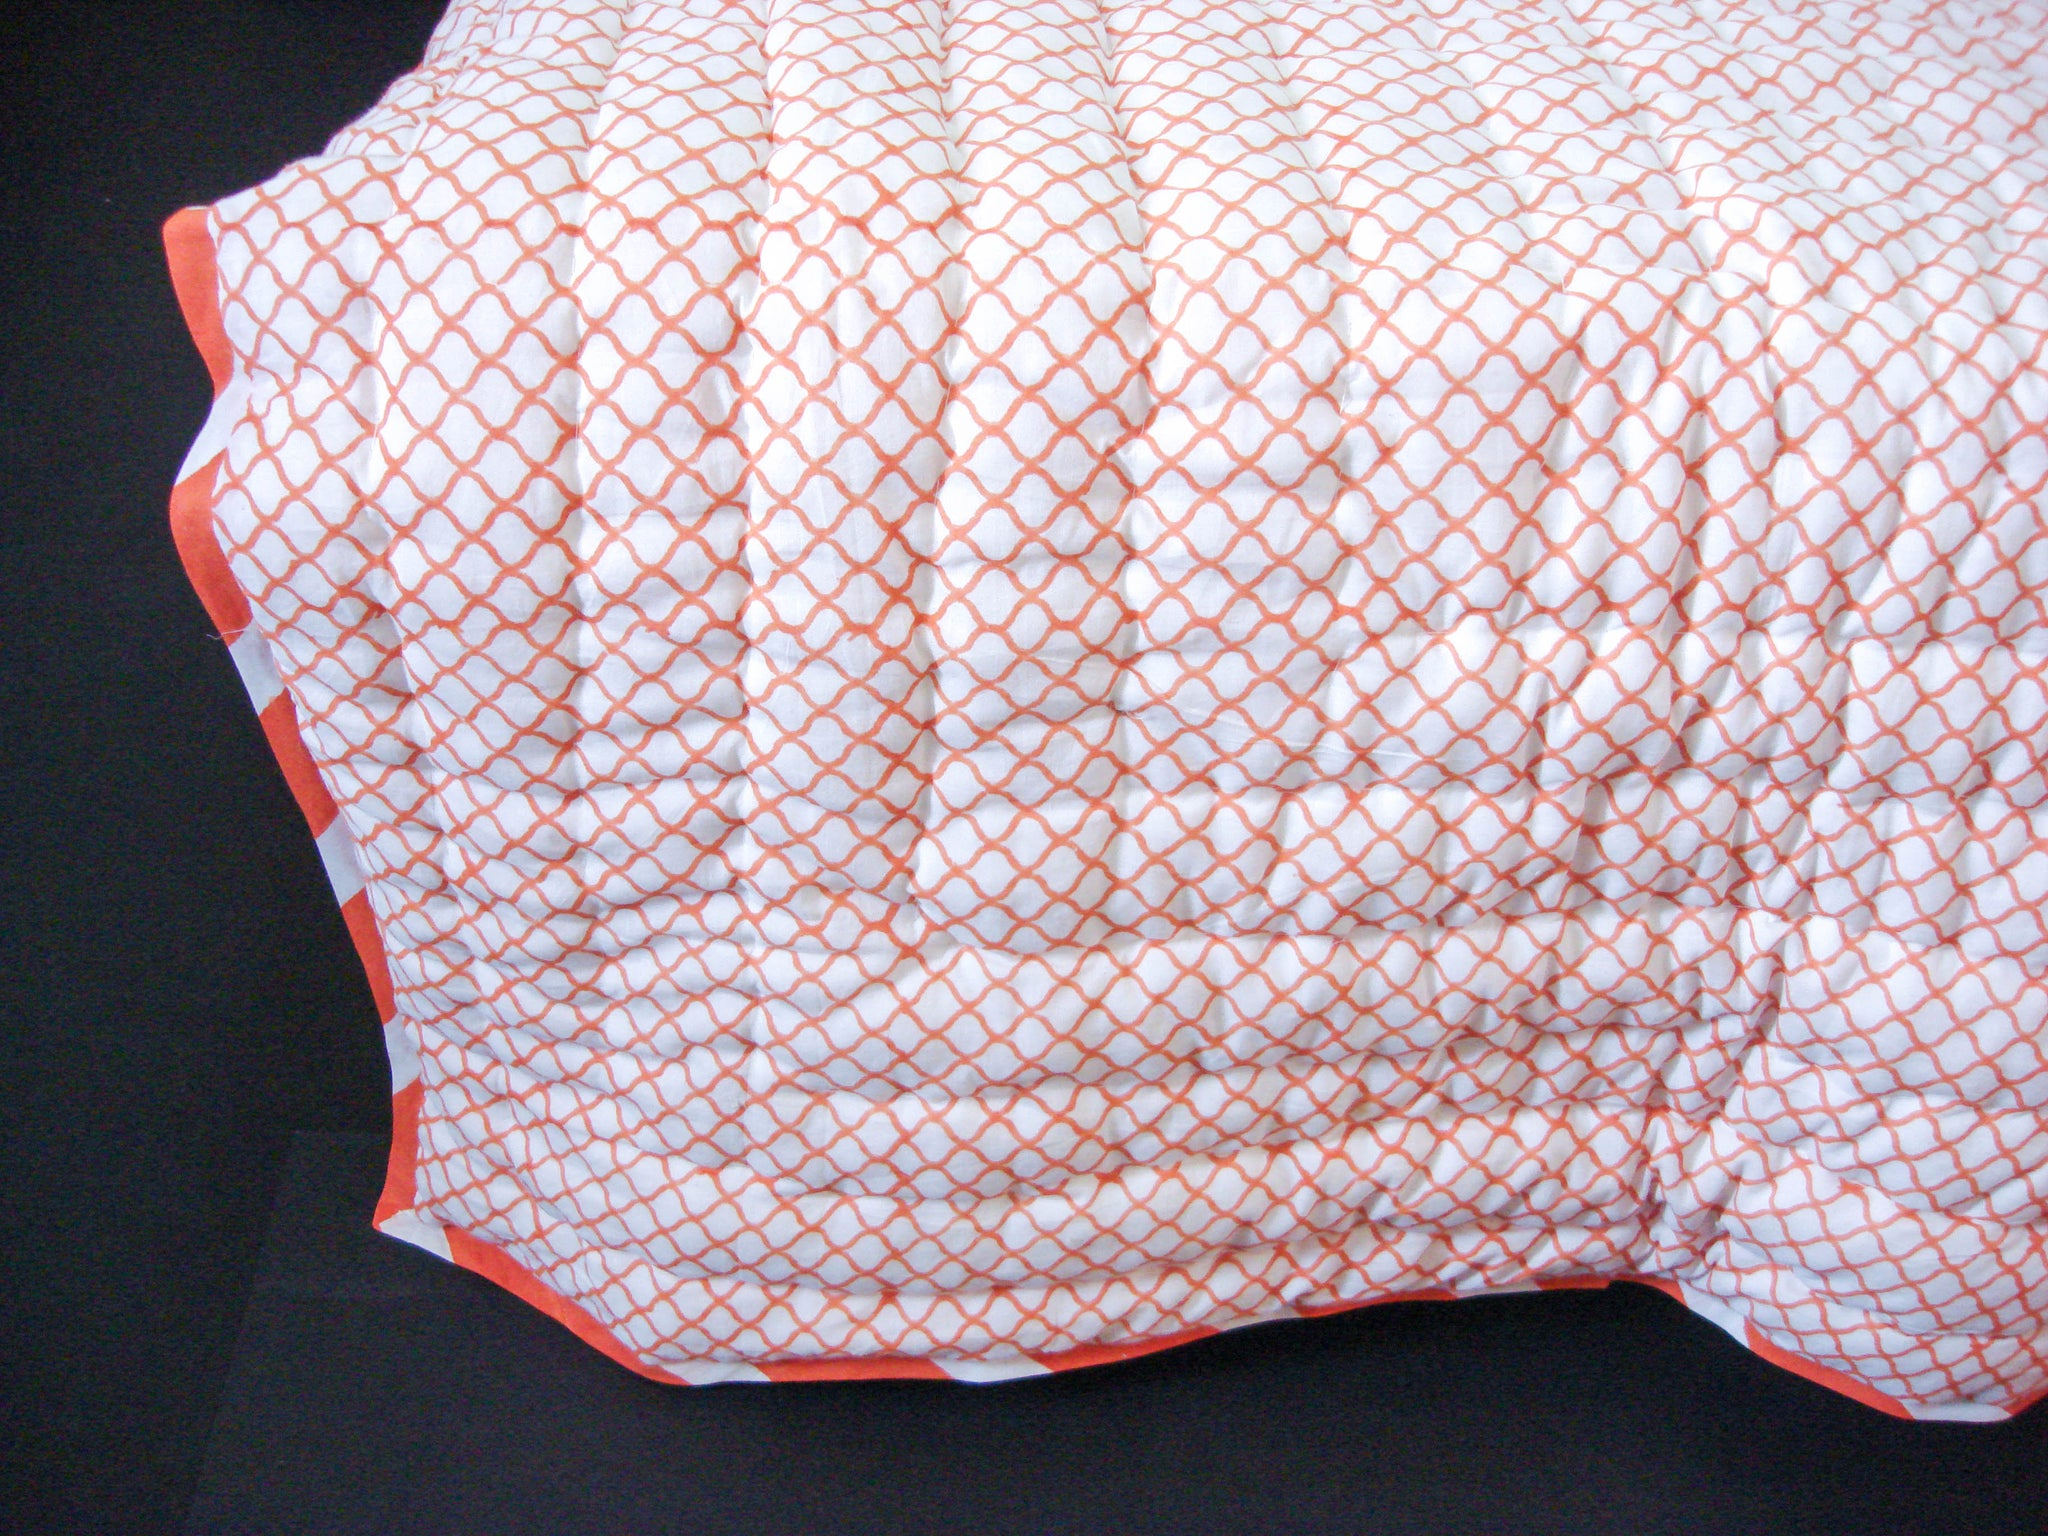 All New Roysha Handmade Cotton Queen Quilt in  Sunny Orange Geometric Pattern